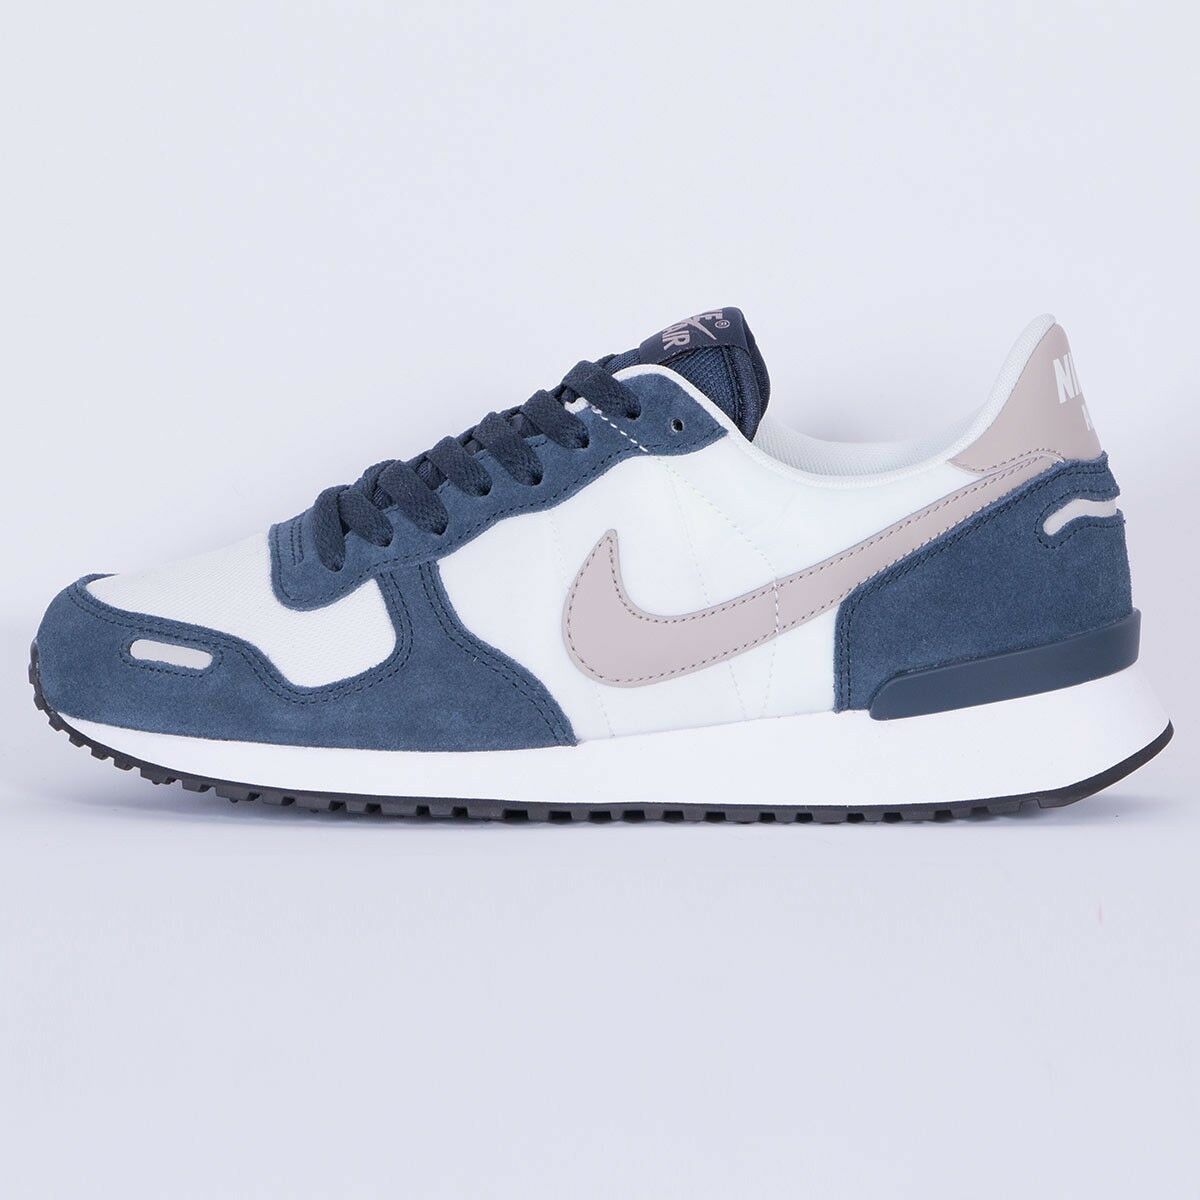 Nike Men Air Vortex Men's Sneakers Sports Shoes Navy White 903896-400 US7-11 04'